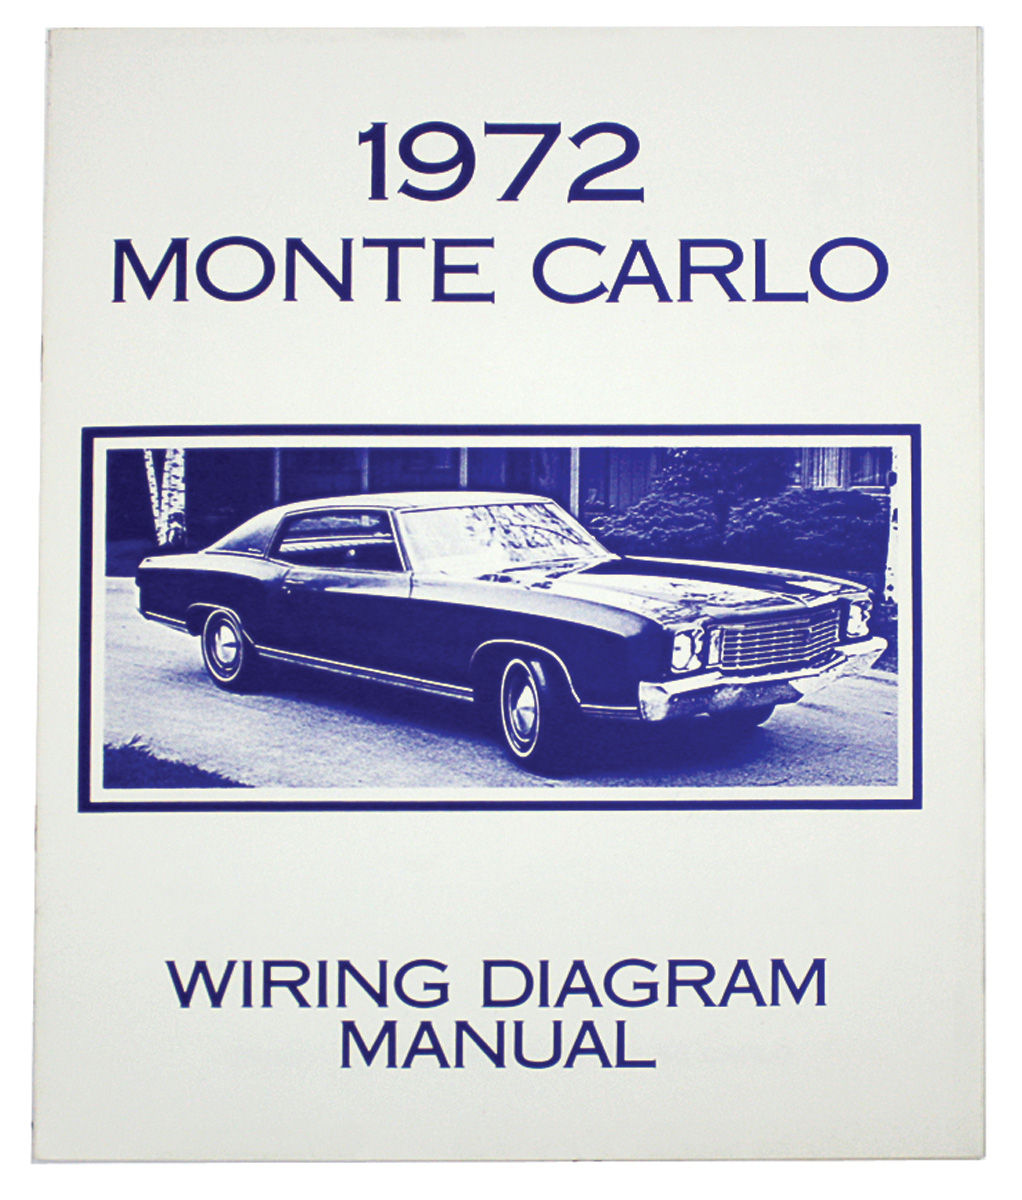 hight resolution of 1972 monte carlo wiring diagram wiring library for a 1999 chevy monte carlo wiring diagram 1970 monte carlo alternator wiring diagram